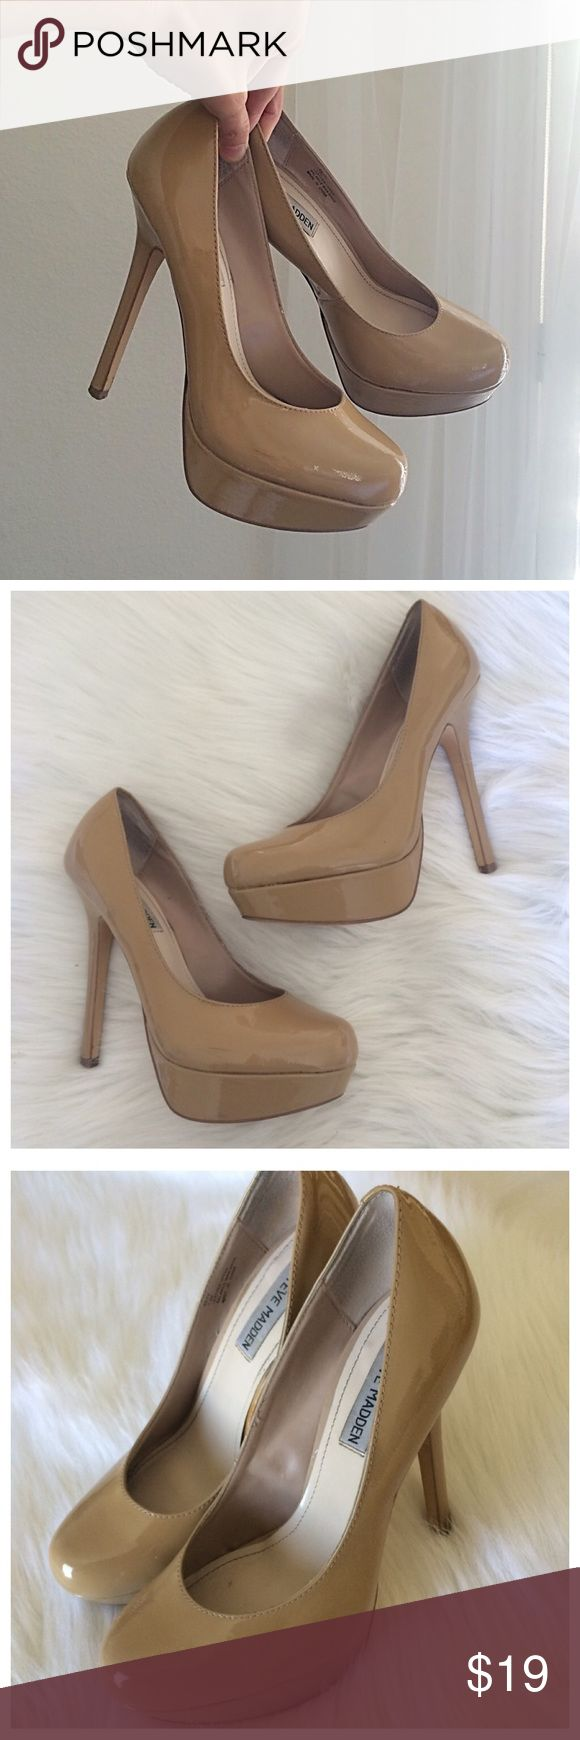 """Steve Madden high heels sz 7.5 Gorgeous Steve Madden 1.25"""" platform. Regular wear on soles, and they have barely visible scuffs, caps are excellent condition, overall these heels are in excellent condition. Heel height:5"""". Steve Madden Shoes Heels"""